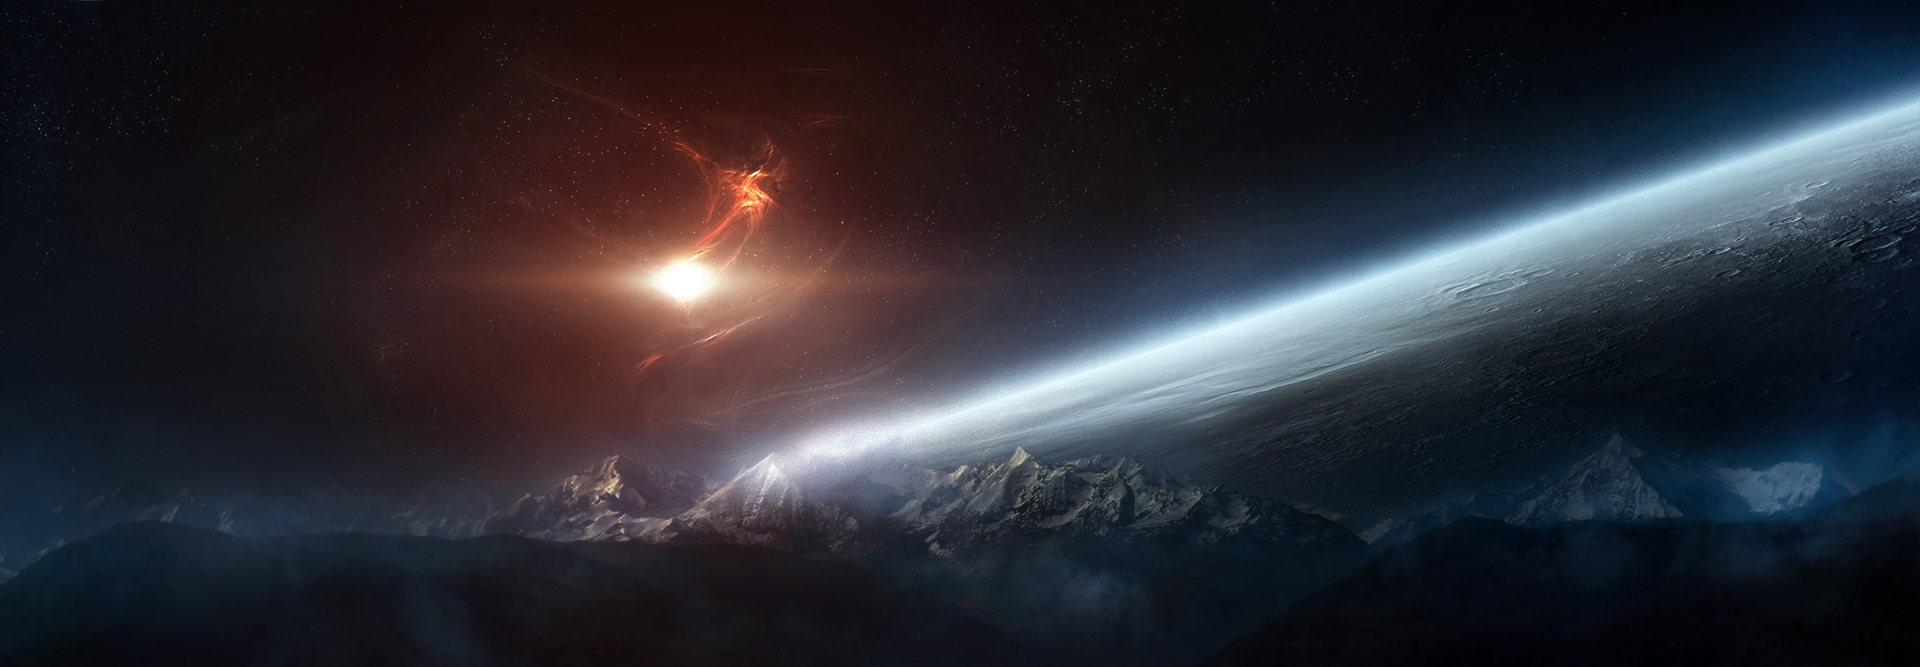 Free Download Dual Monitor Wallpaper Space All Hd Wallpapers